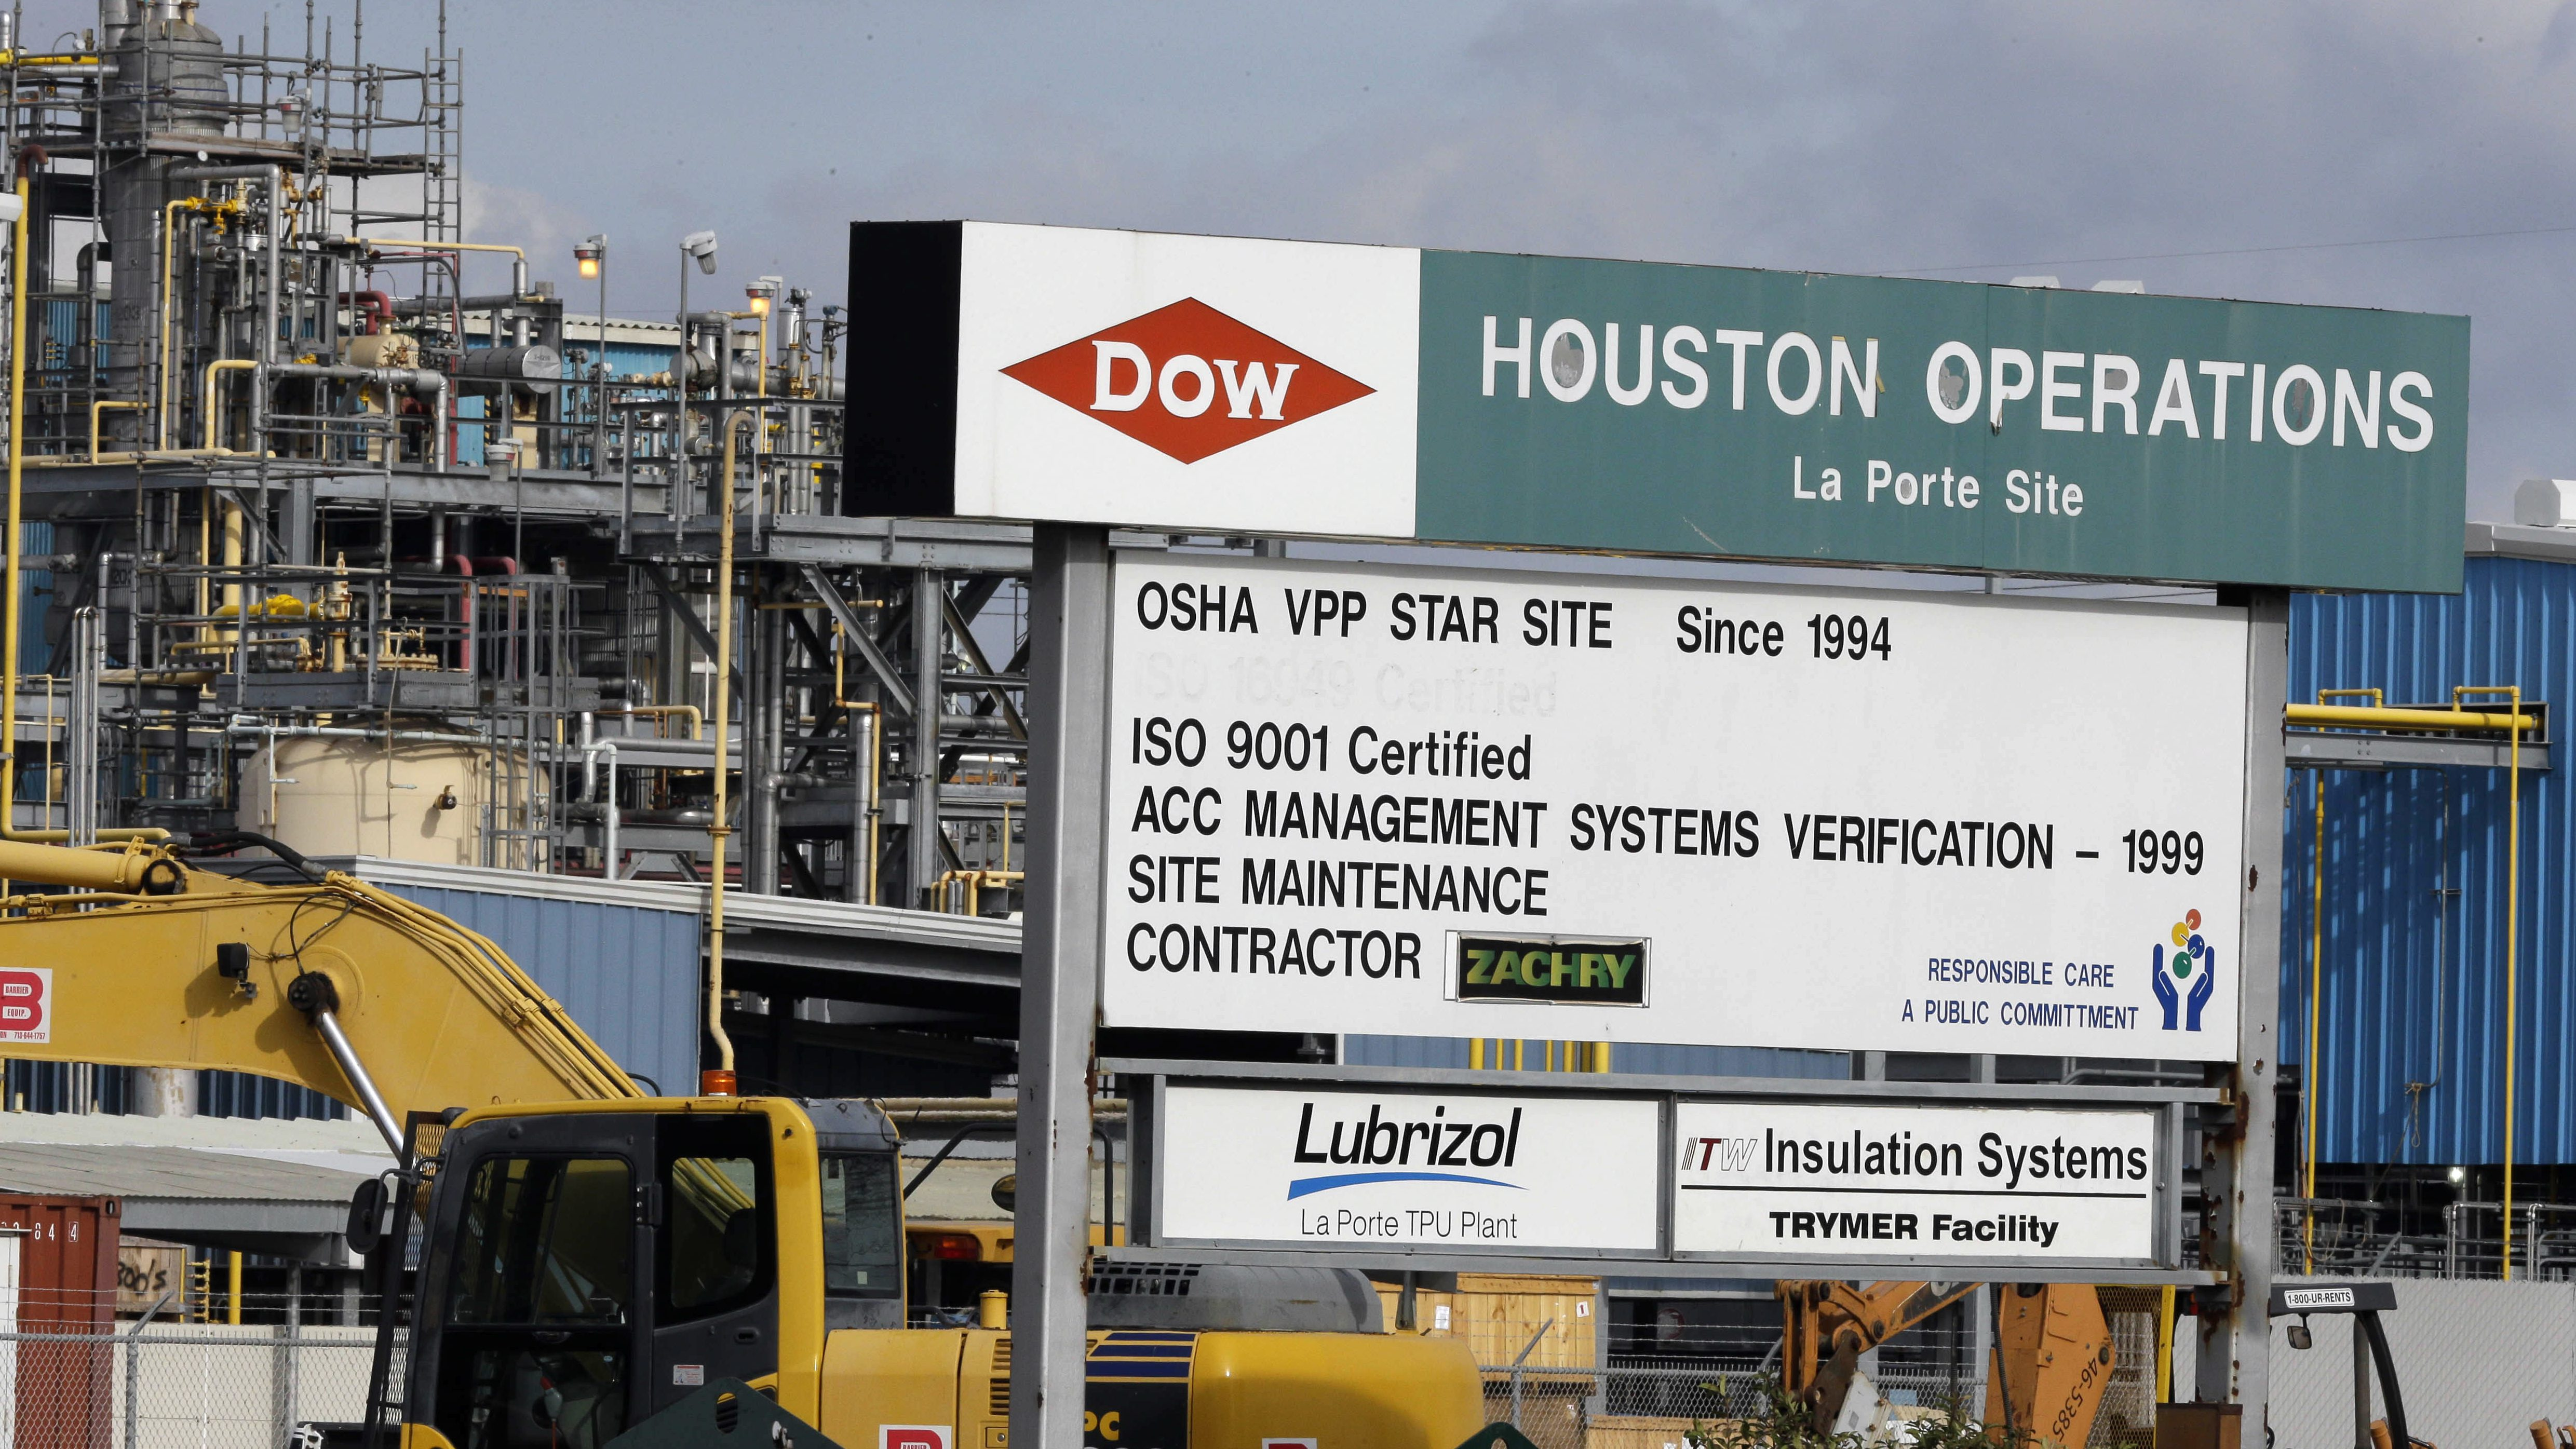 Dow chemical sign